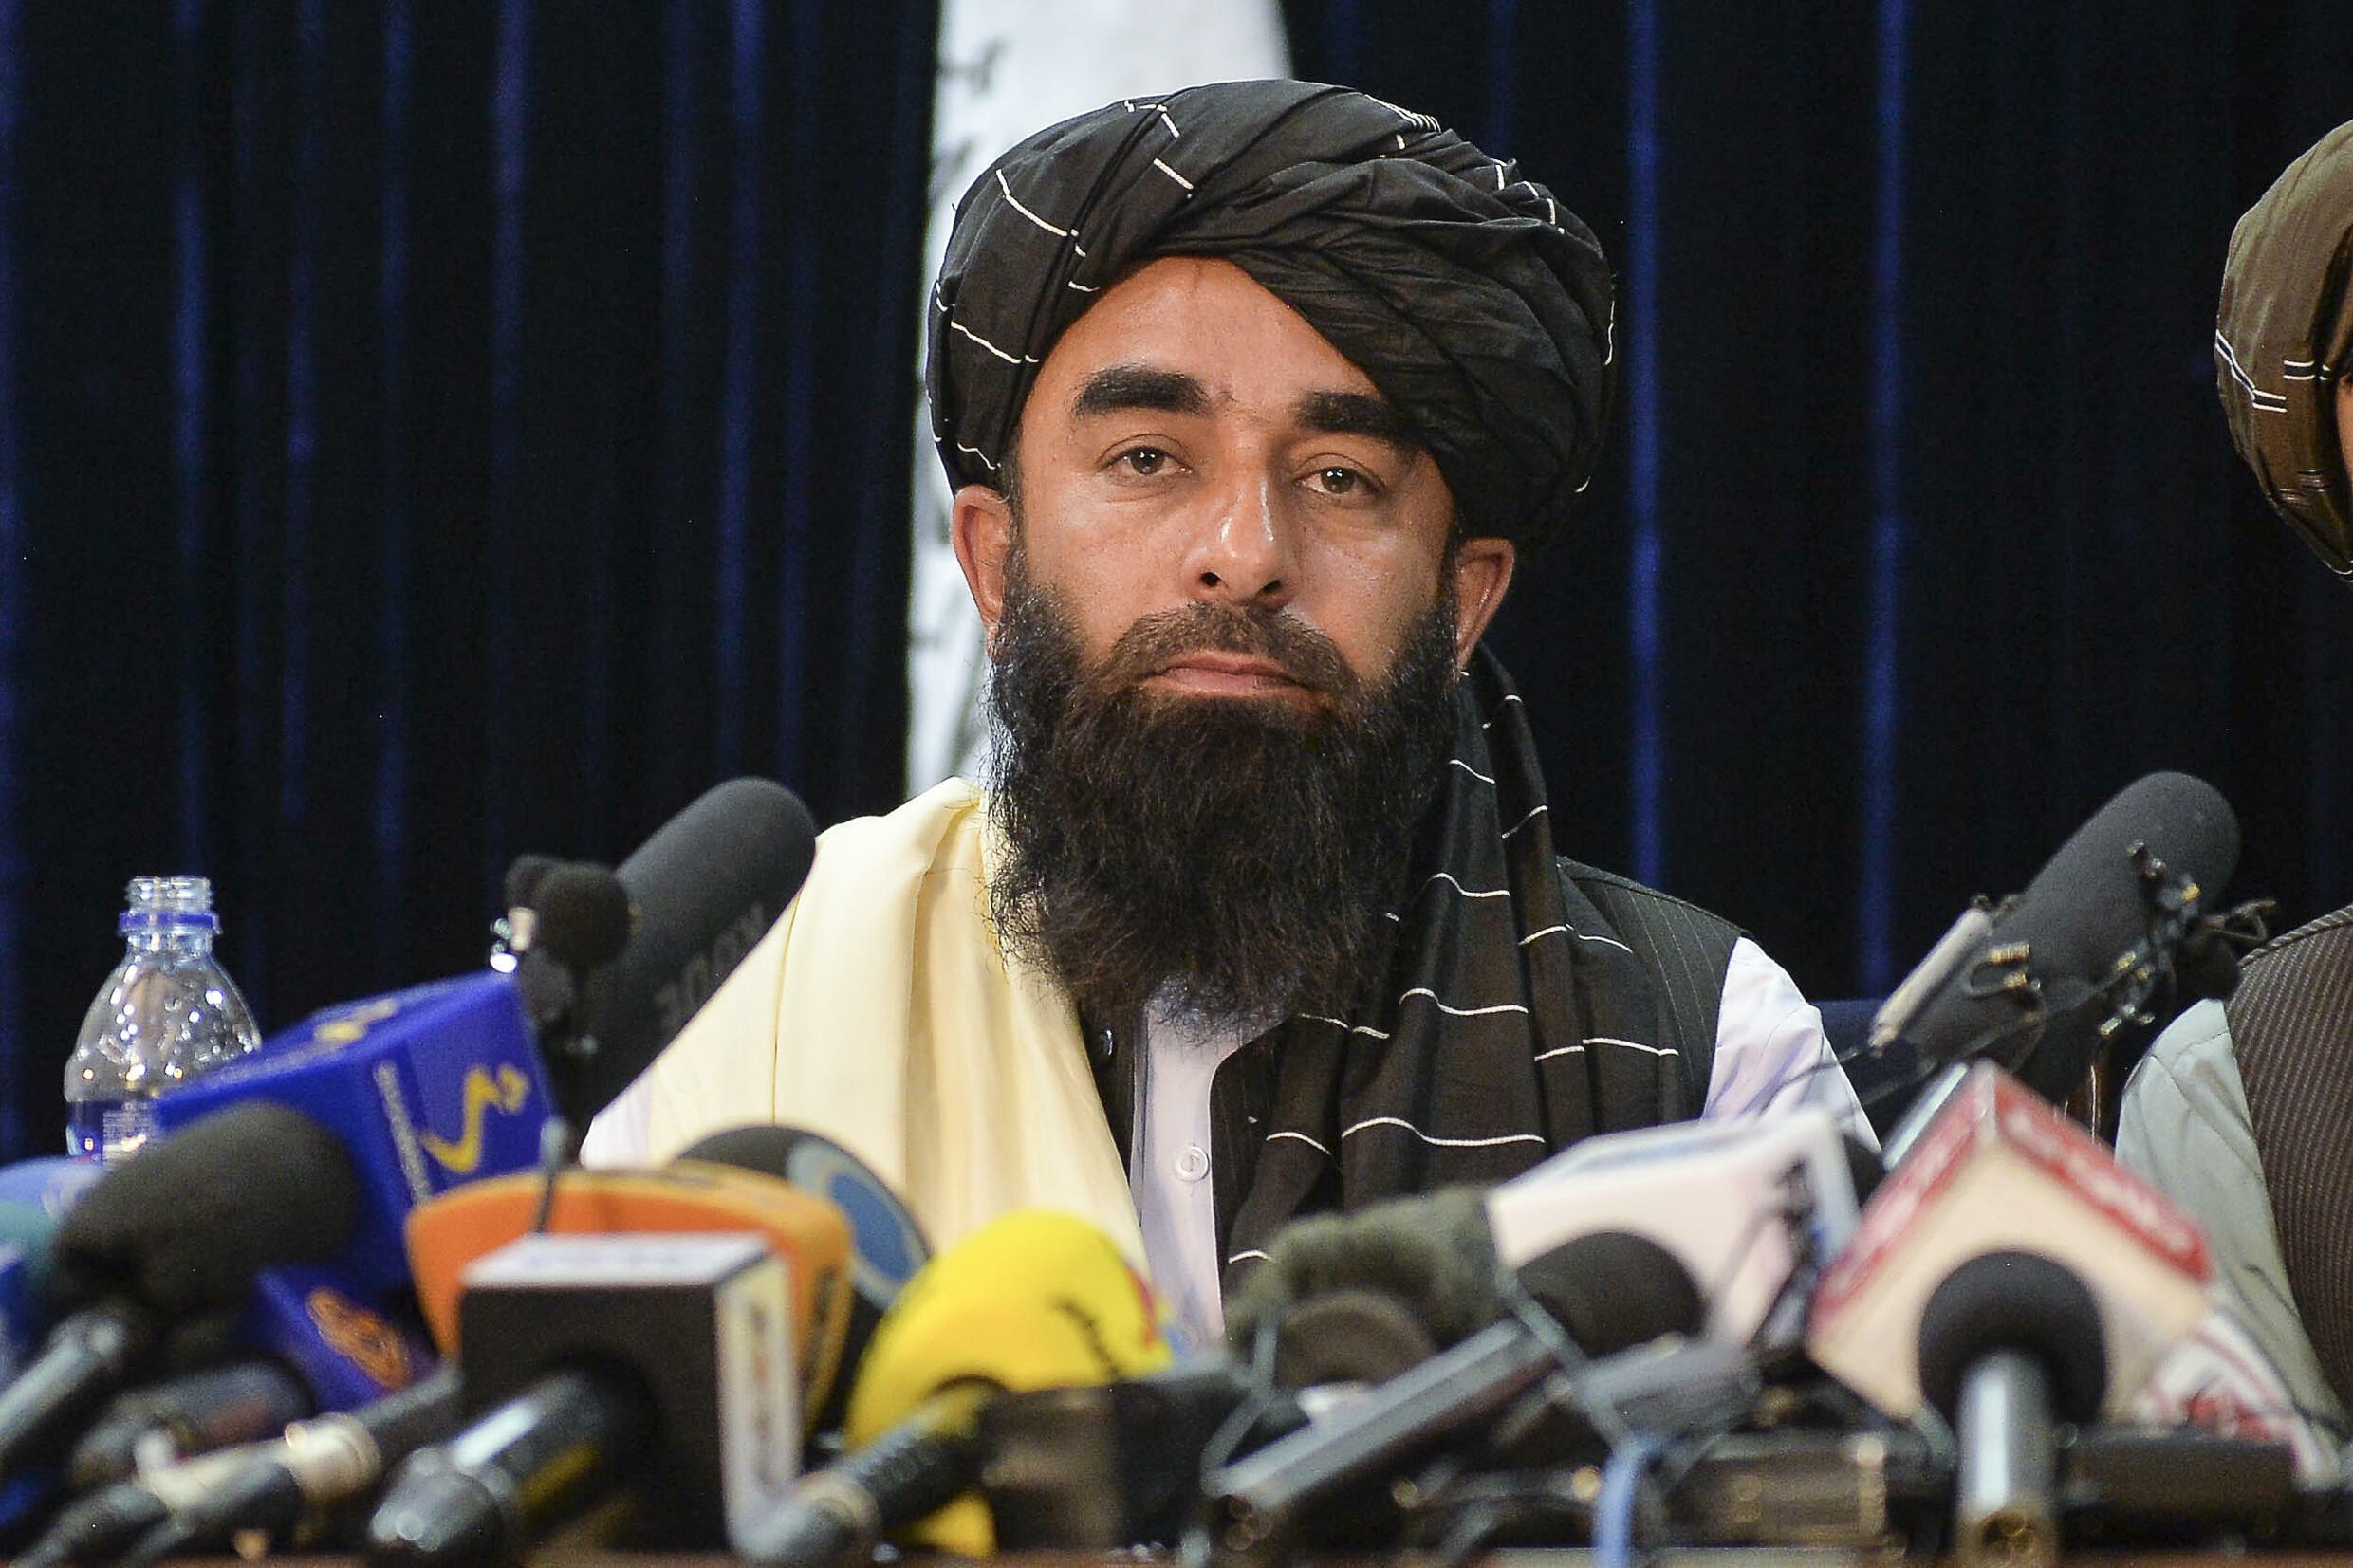 Just over a week before capturing Kabul, the Taliban claimed responsibility for killing the head of the government media centre